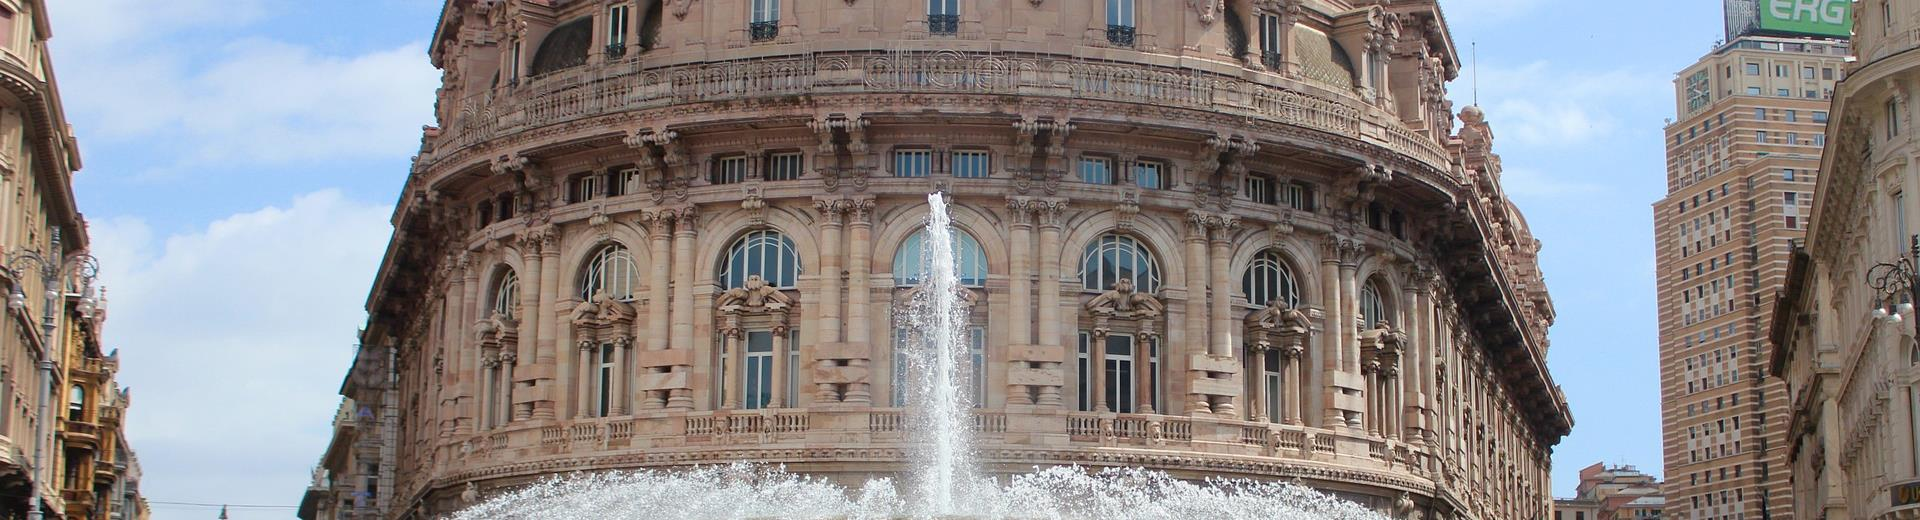 Palaces and museums-discover the beauty of Genova with Hotel Metropoli